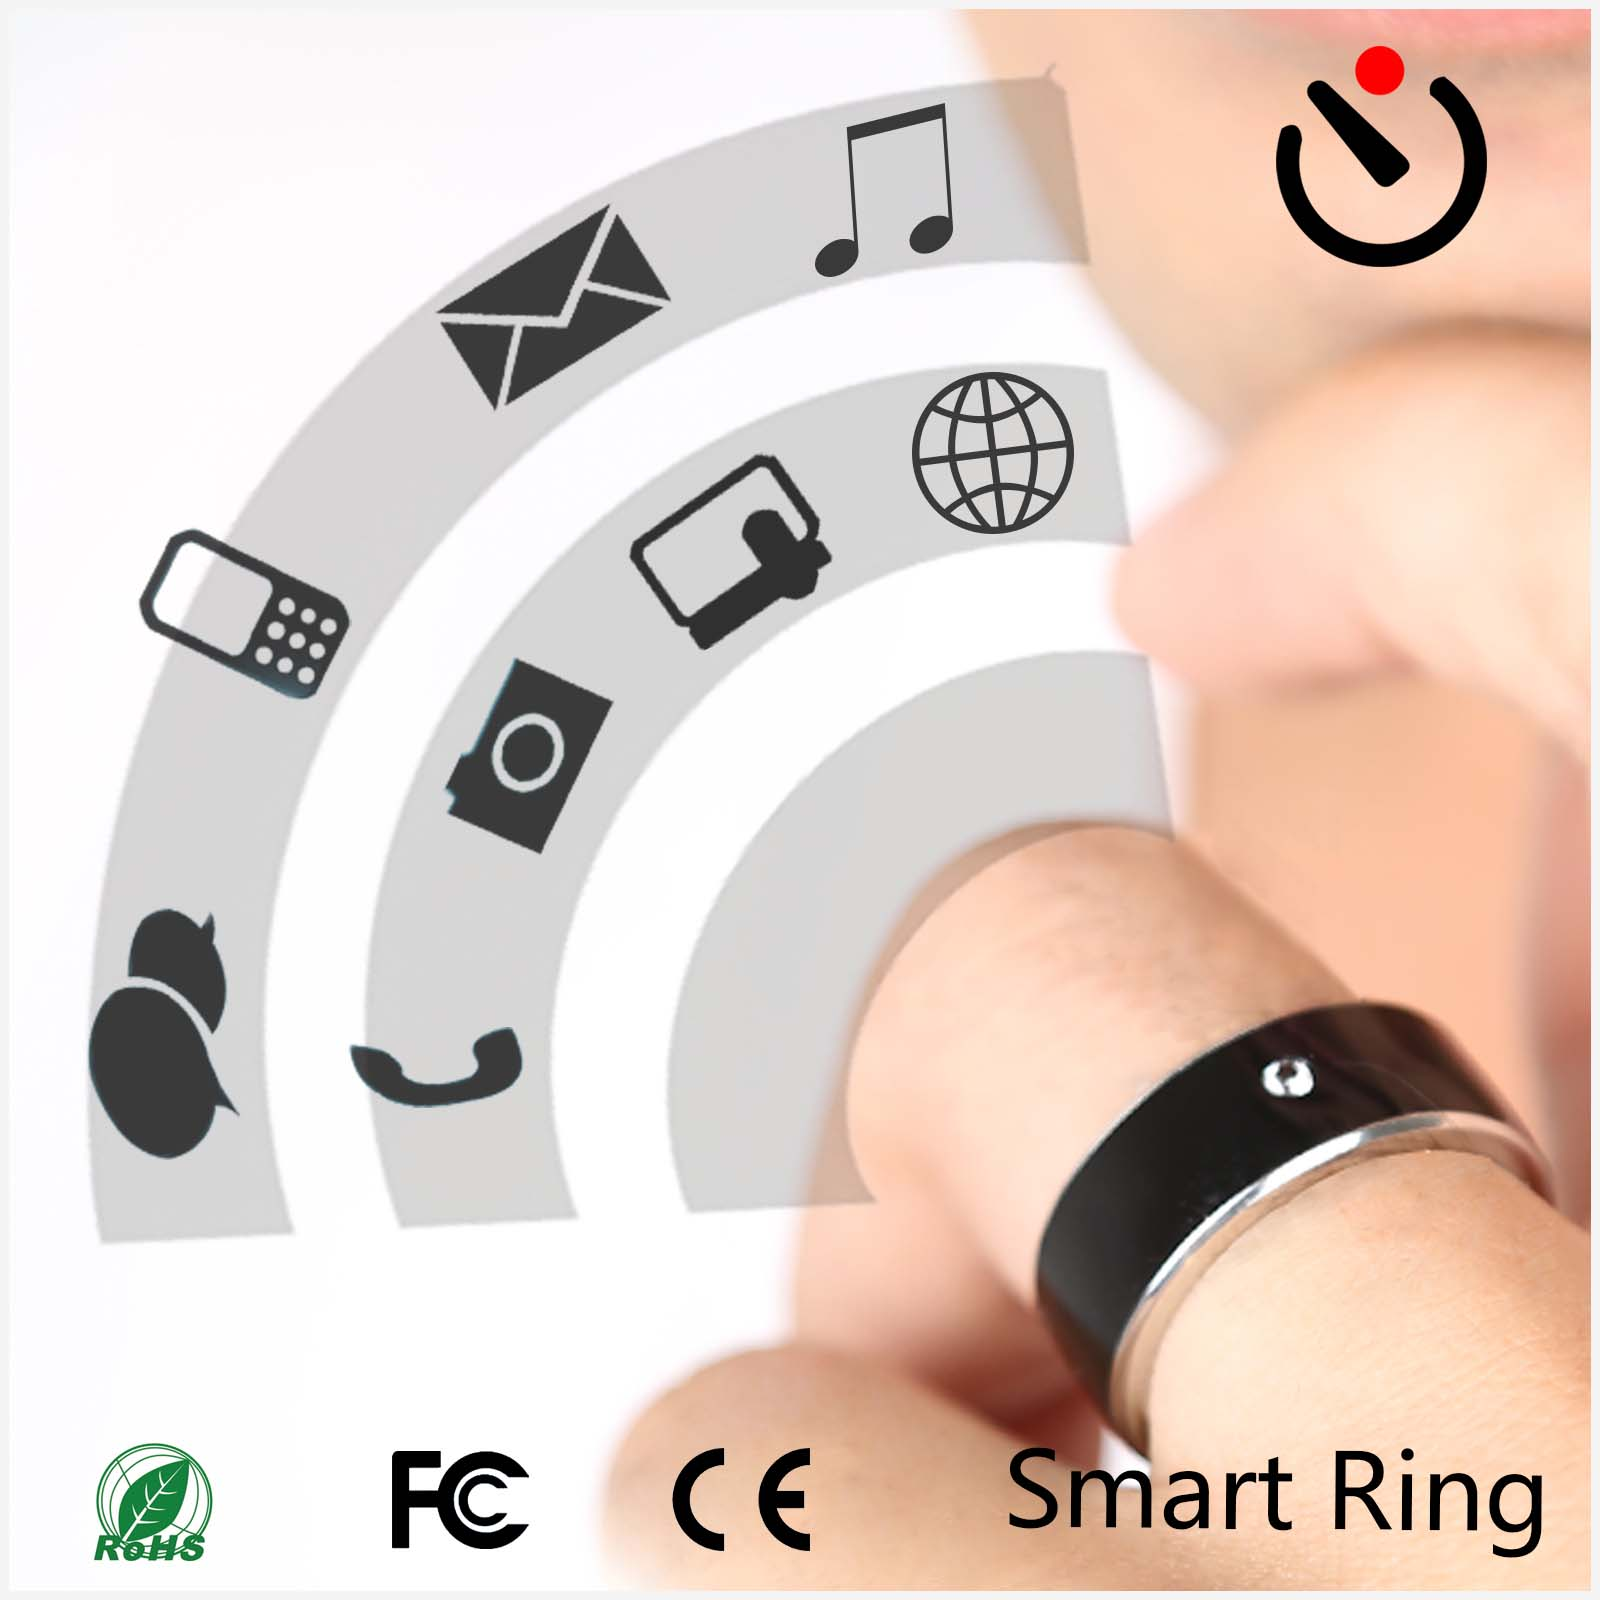 Smart <font><b>R</b></font> I N G Consumer Electronics Mobile Phone Accessories Of Mobile Phone Lcds For <font><b>Samsung</b></font> Galaxy S4 Celulares Phones